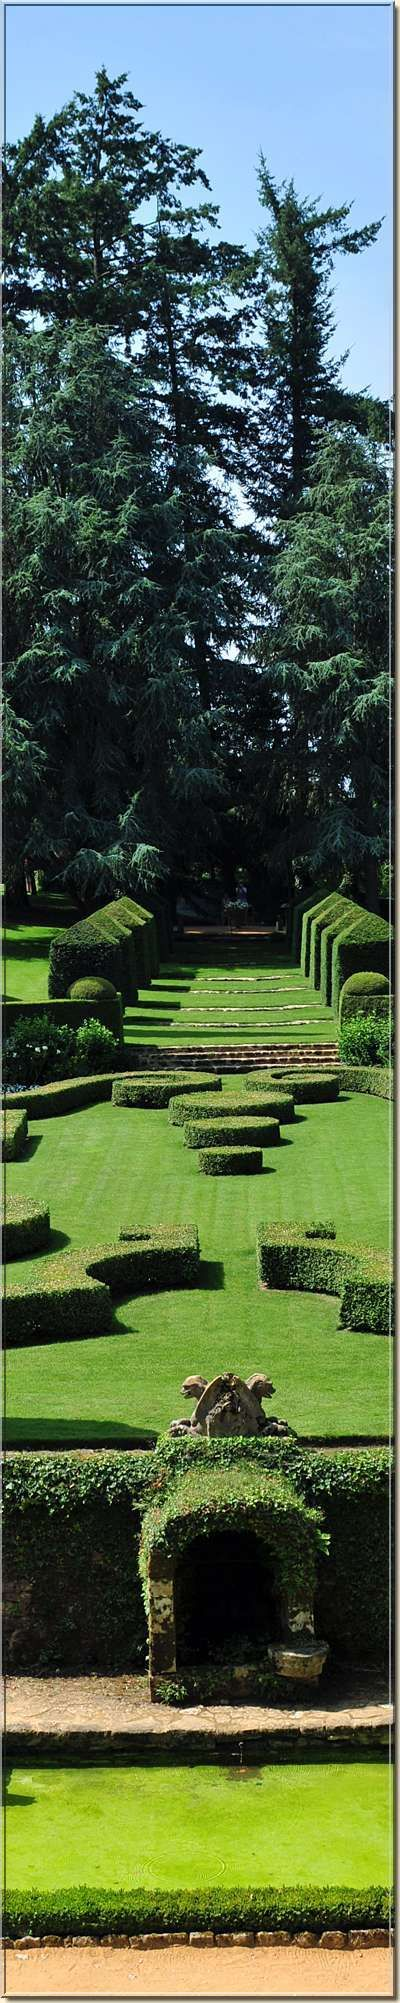 The Gardens of Eyrignac in France...